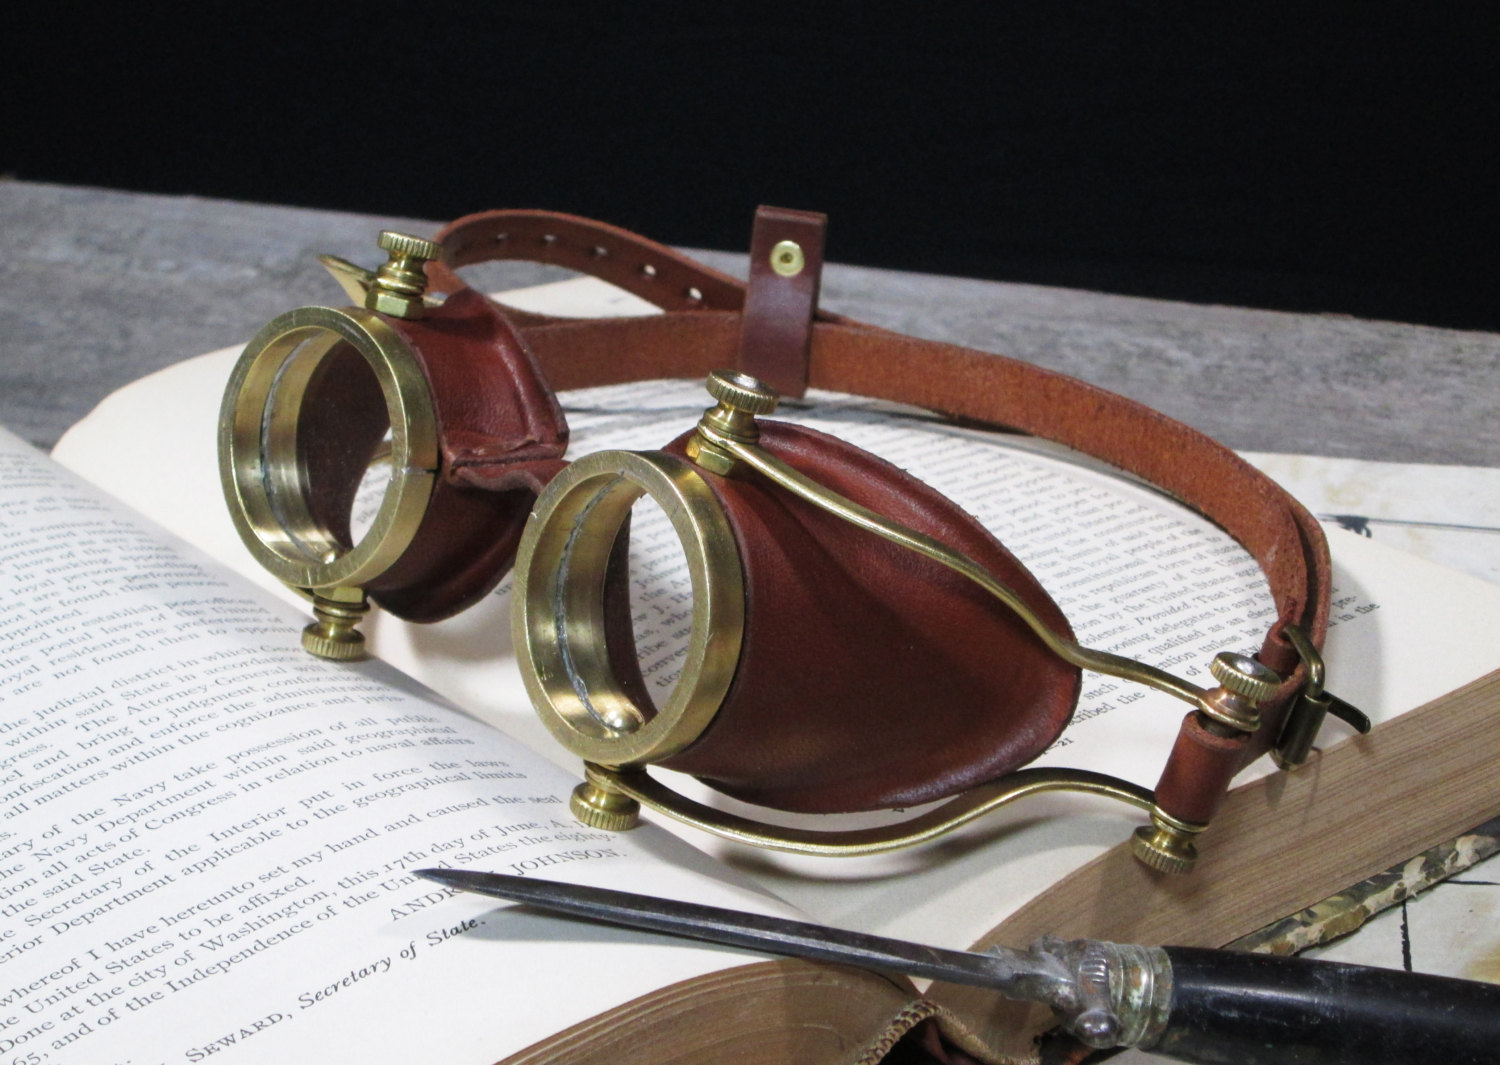 Steampunk Sunglasses For Sale | www.tapdance.org